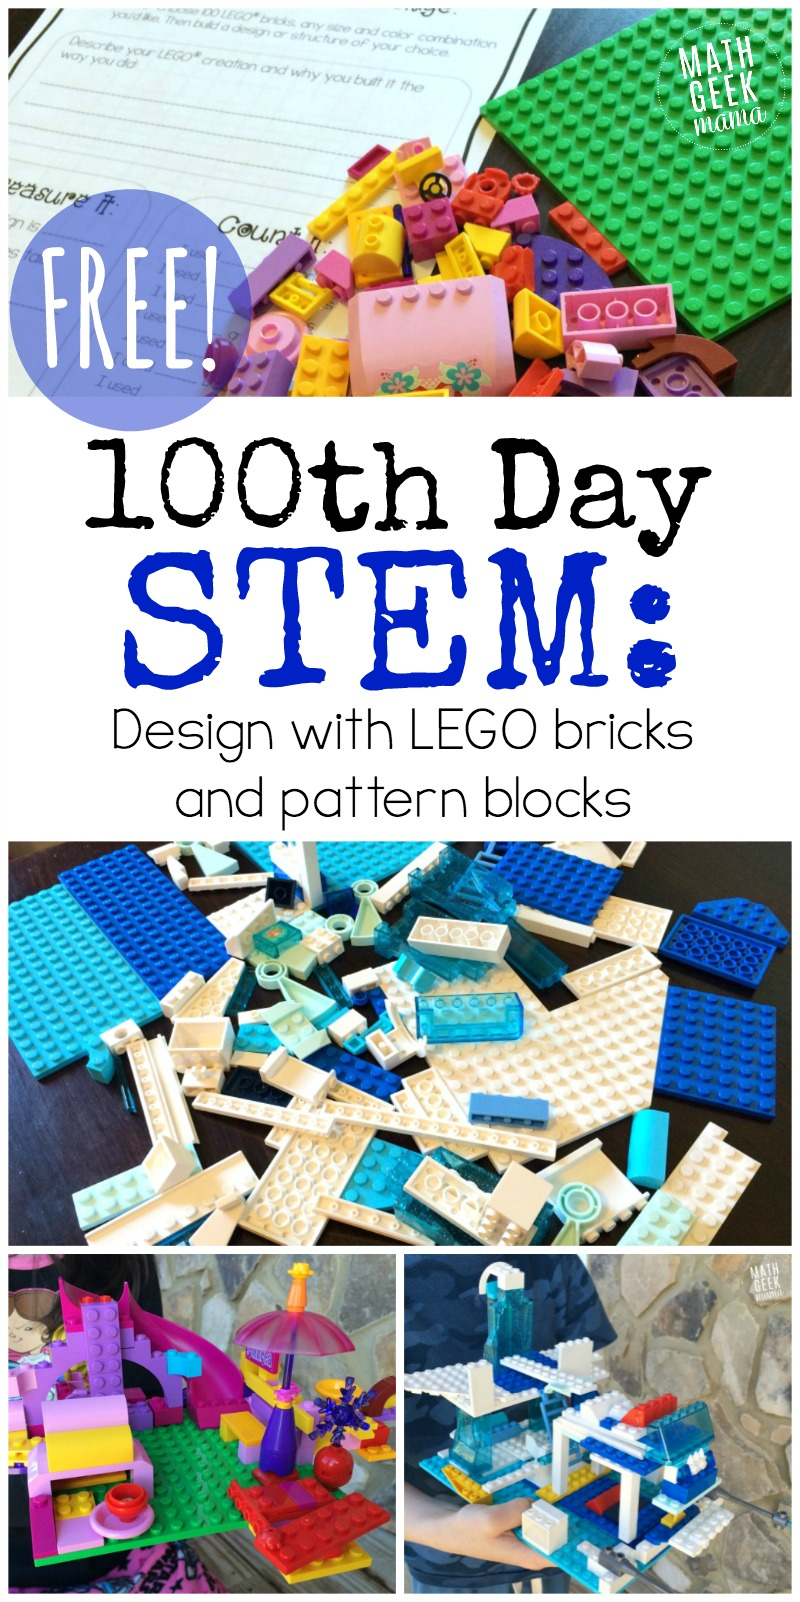 Looking for a fun and engagin STEM challenge for your 100th day of school? This post includes 2 different FREE 100th day of school STEM activities which can be used or adapted for grades K-6. Kids will love the challenge and exploring the math behind the design!